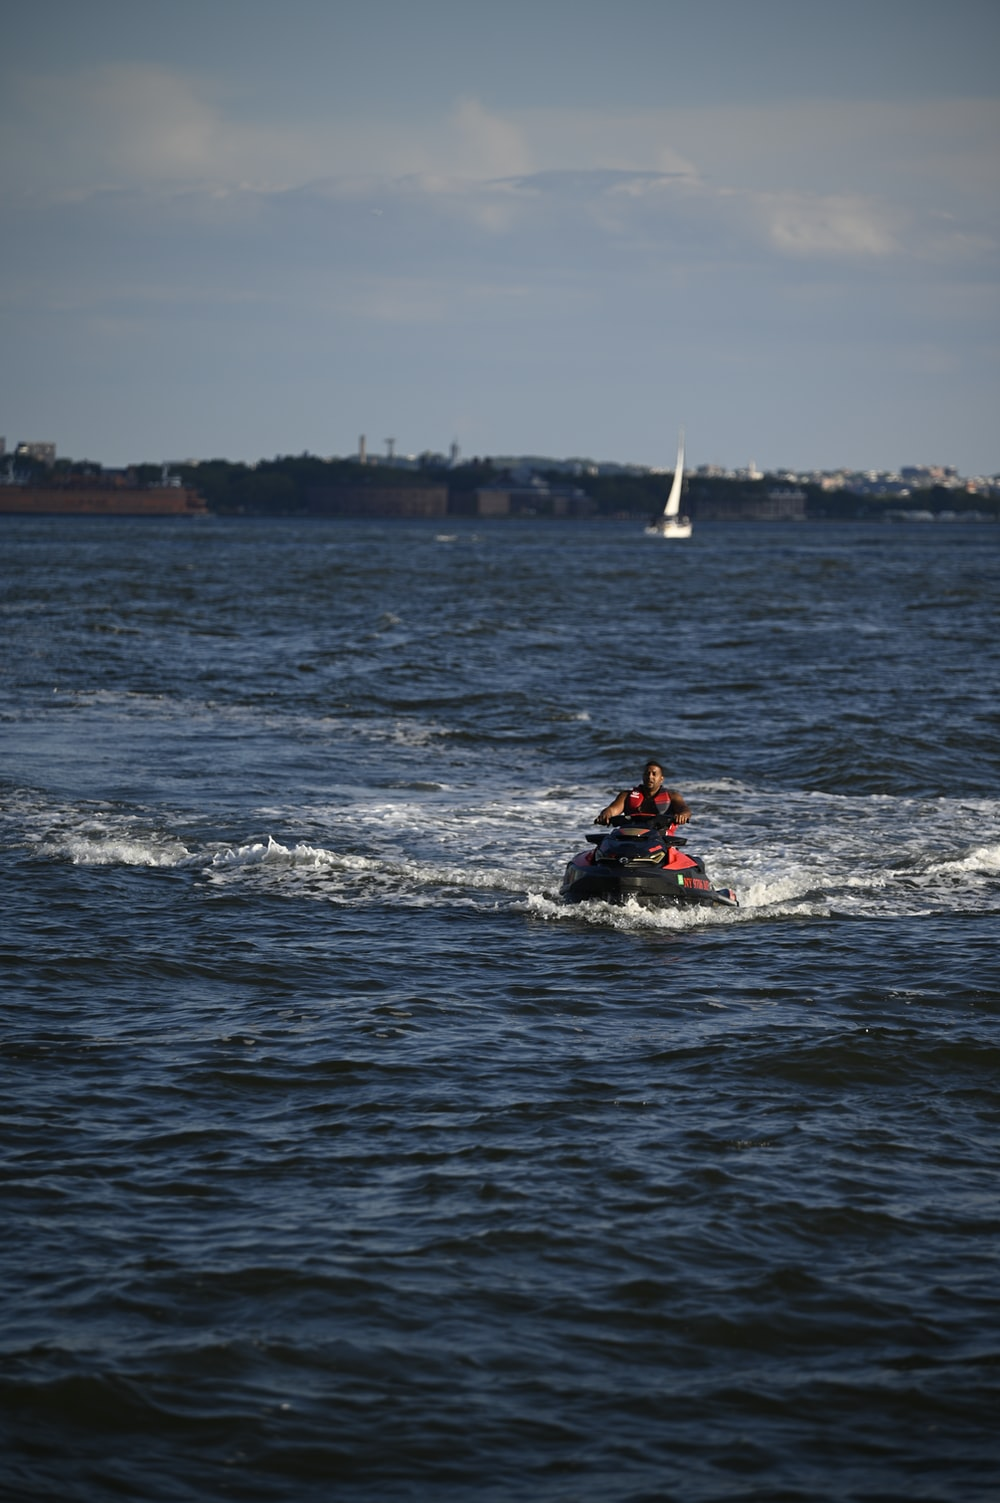 man in red and black vest riding on red kayak on sea during daytime